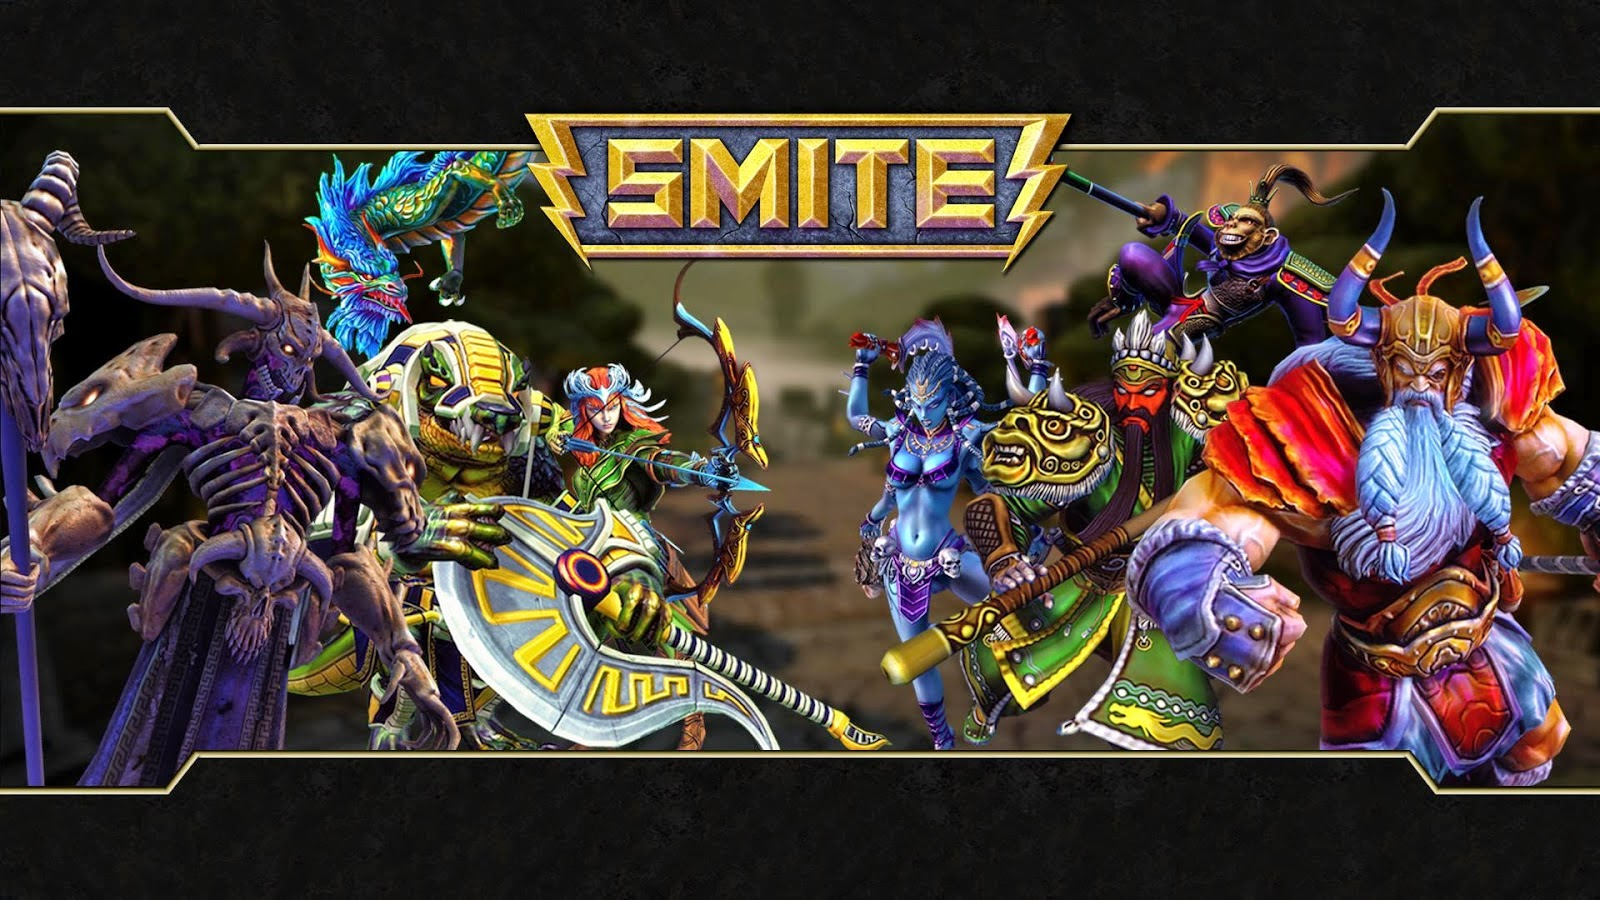 Smite - Multiplayer Games Online